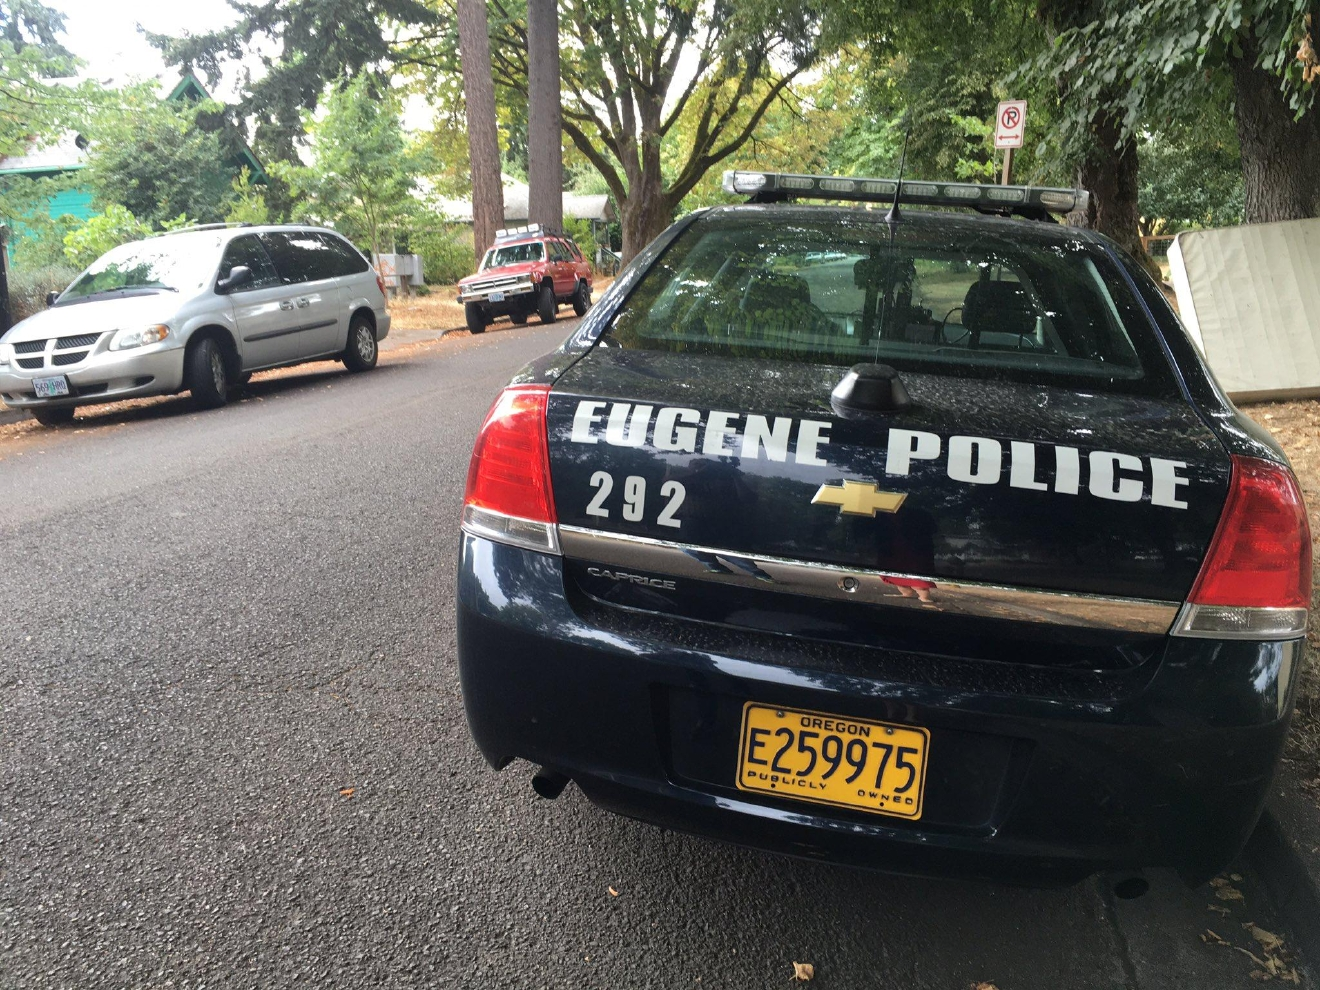 Eugene Police officers went door-to-door searching for any witnesses, photos or videos from the night Anthony Xavier Johnson was killed in the Whiteaker neighborhood. (SBG photo)<p></p>